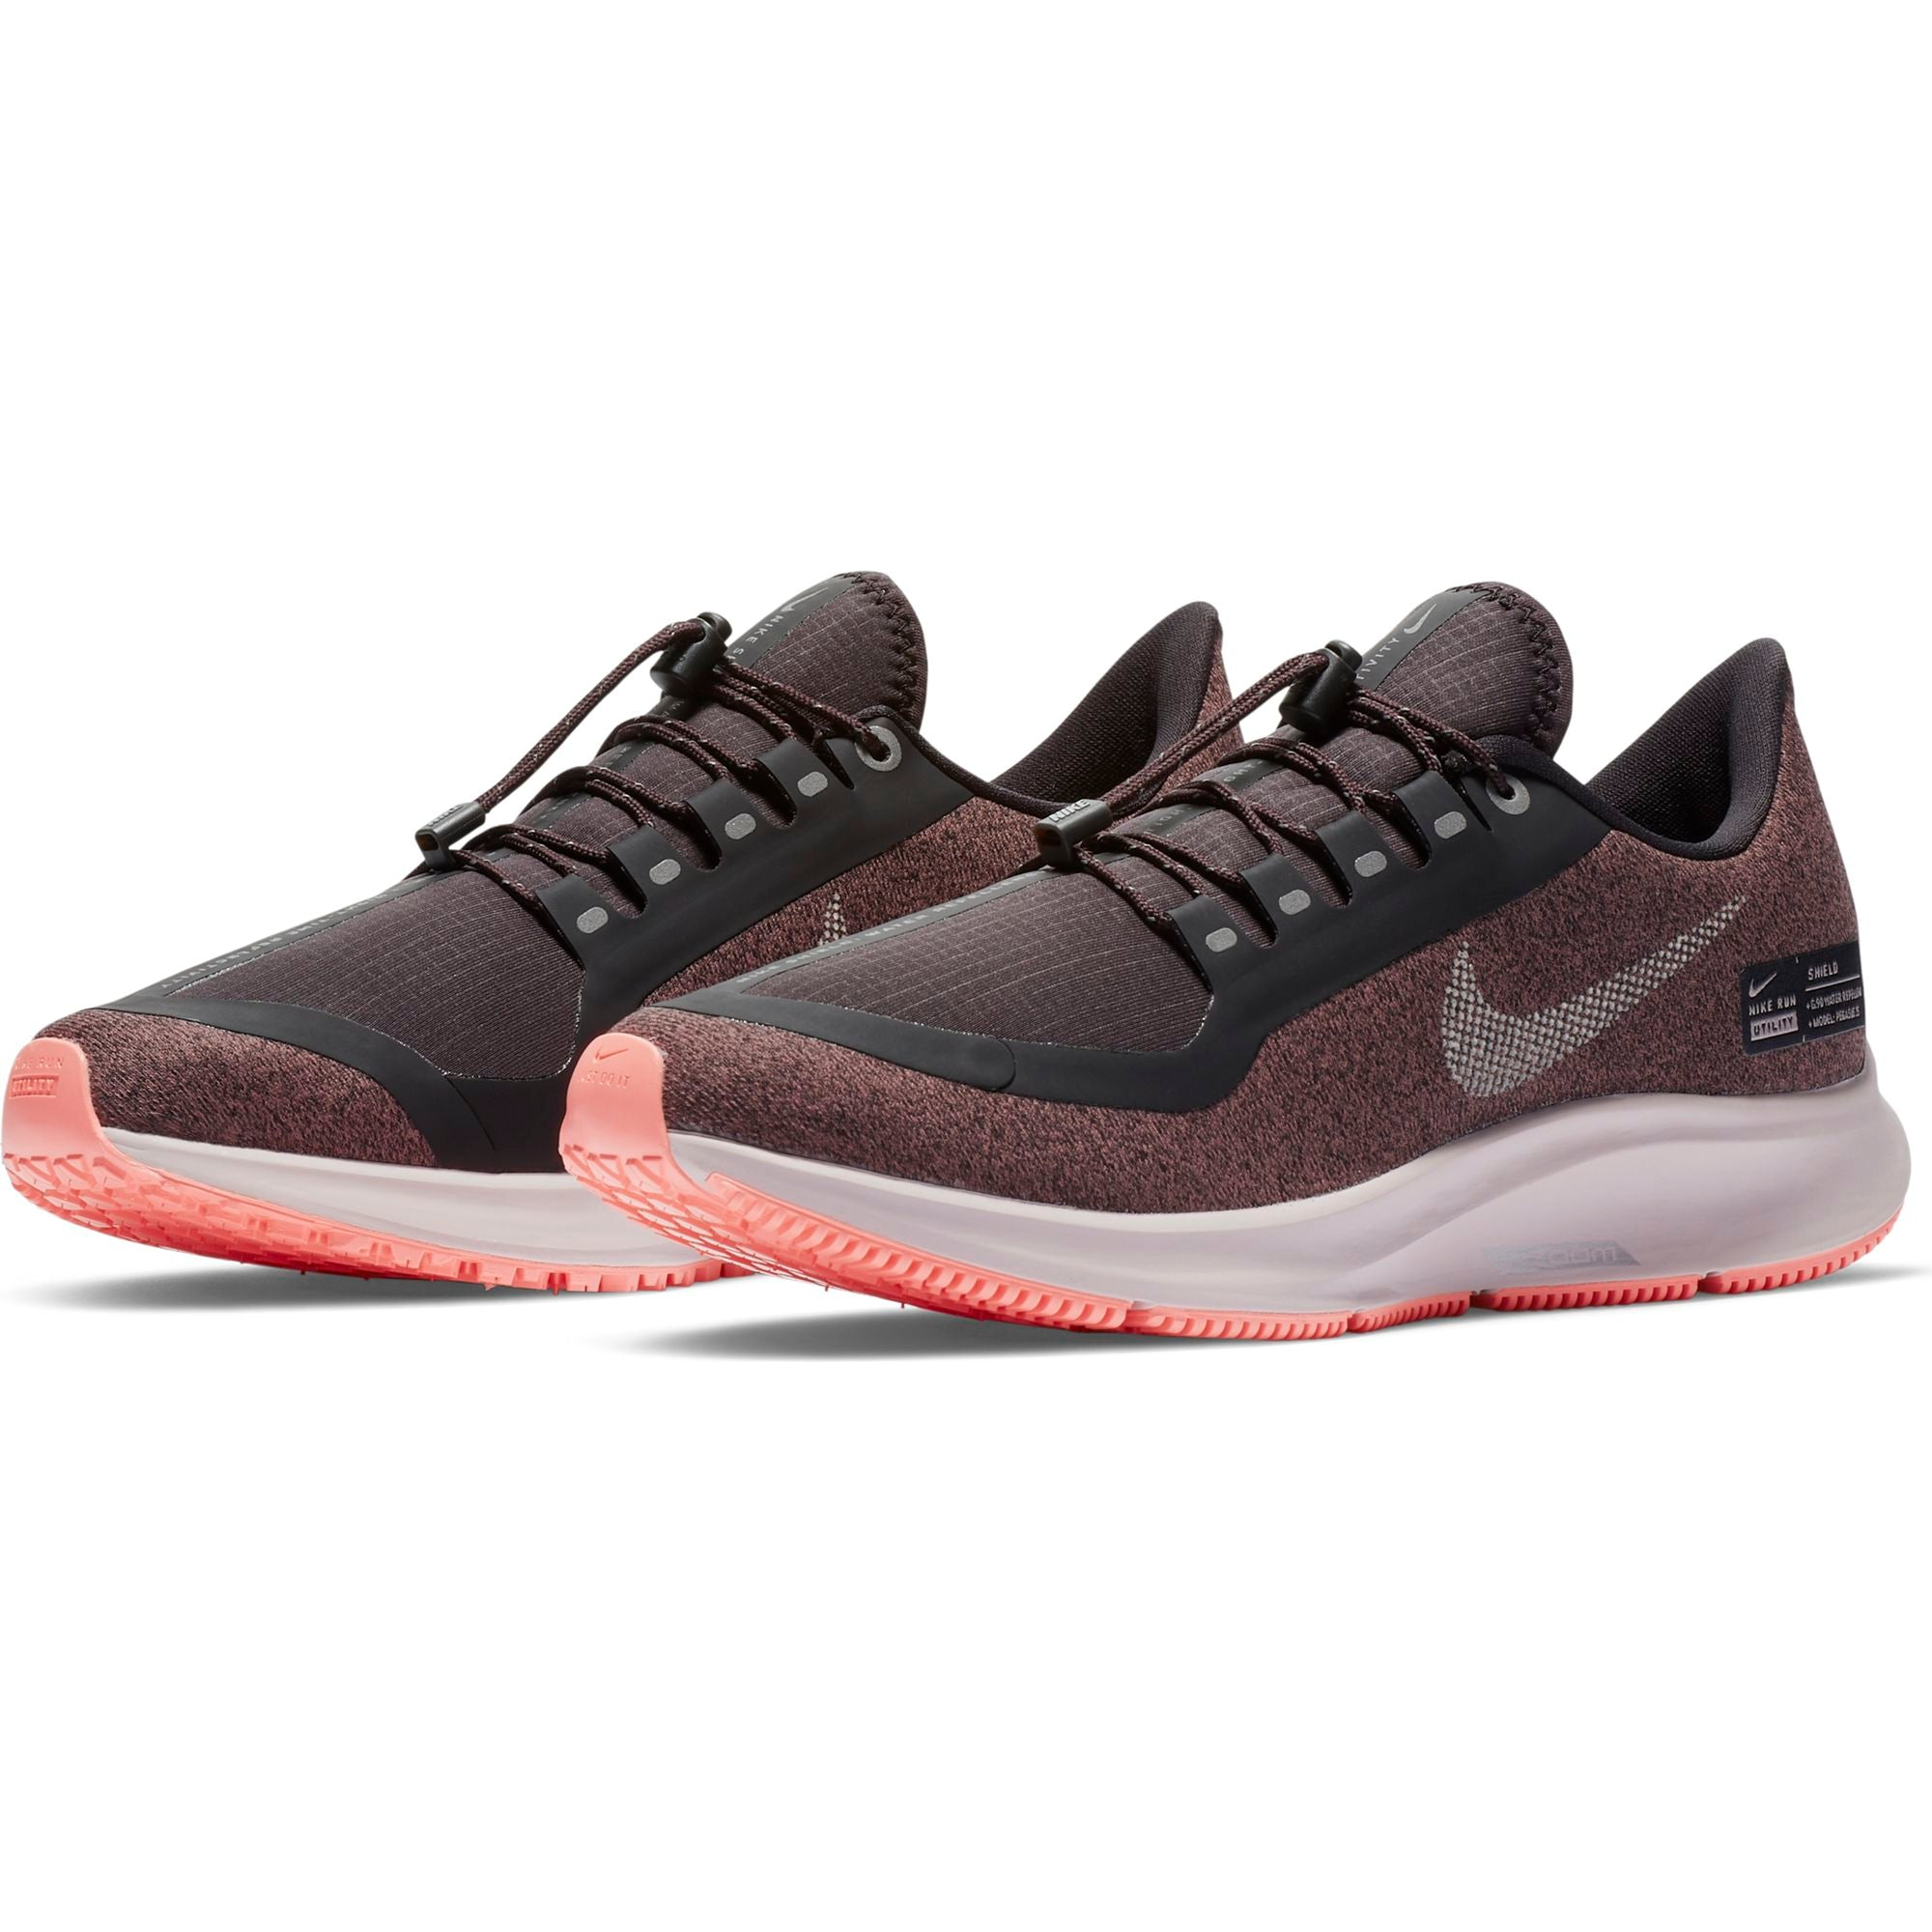 53233bcb8bb0 ... Women s Air Zoom Pegasus 35 Shield Running Shoe - Oil Grey Metallic  Silver Smokey ...